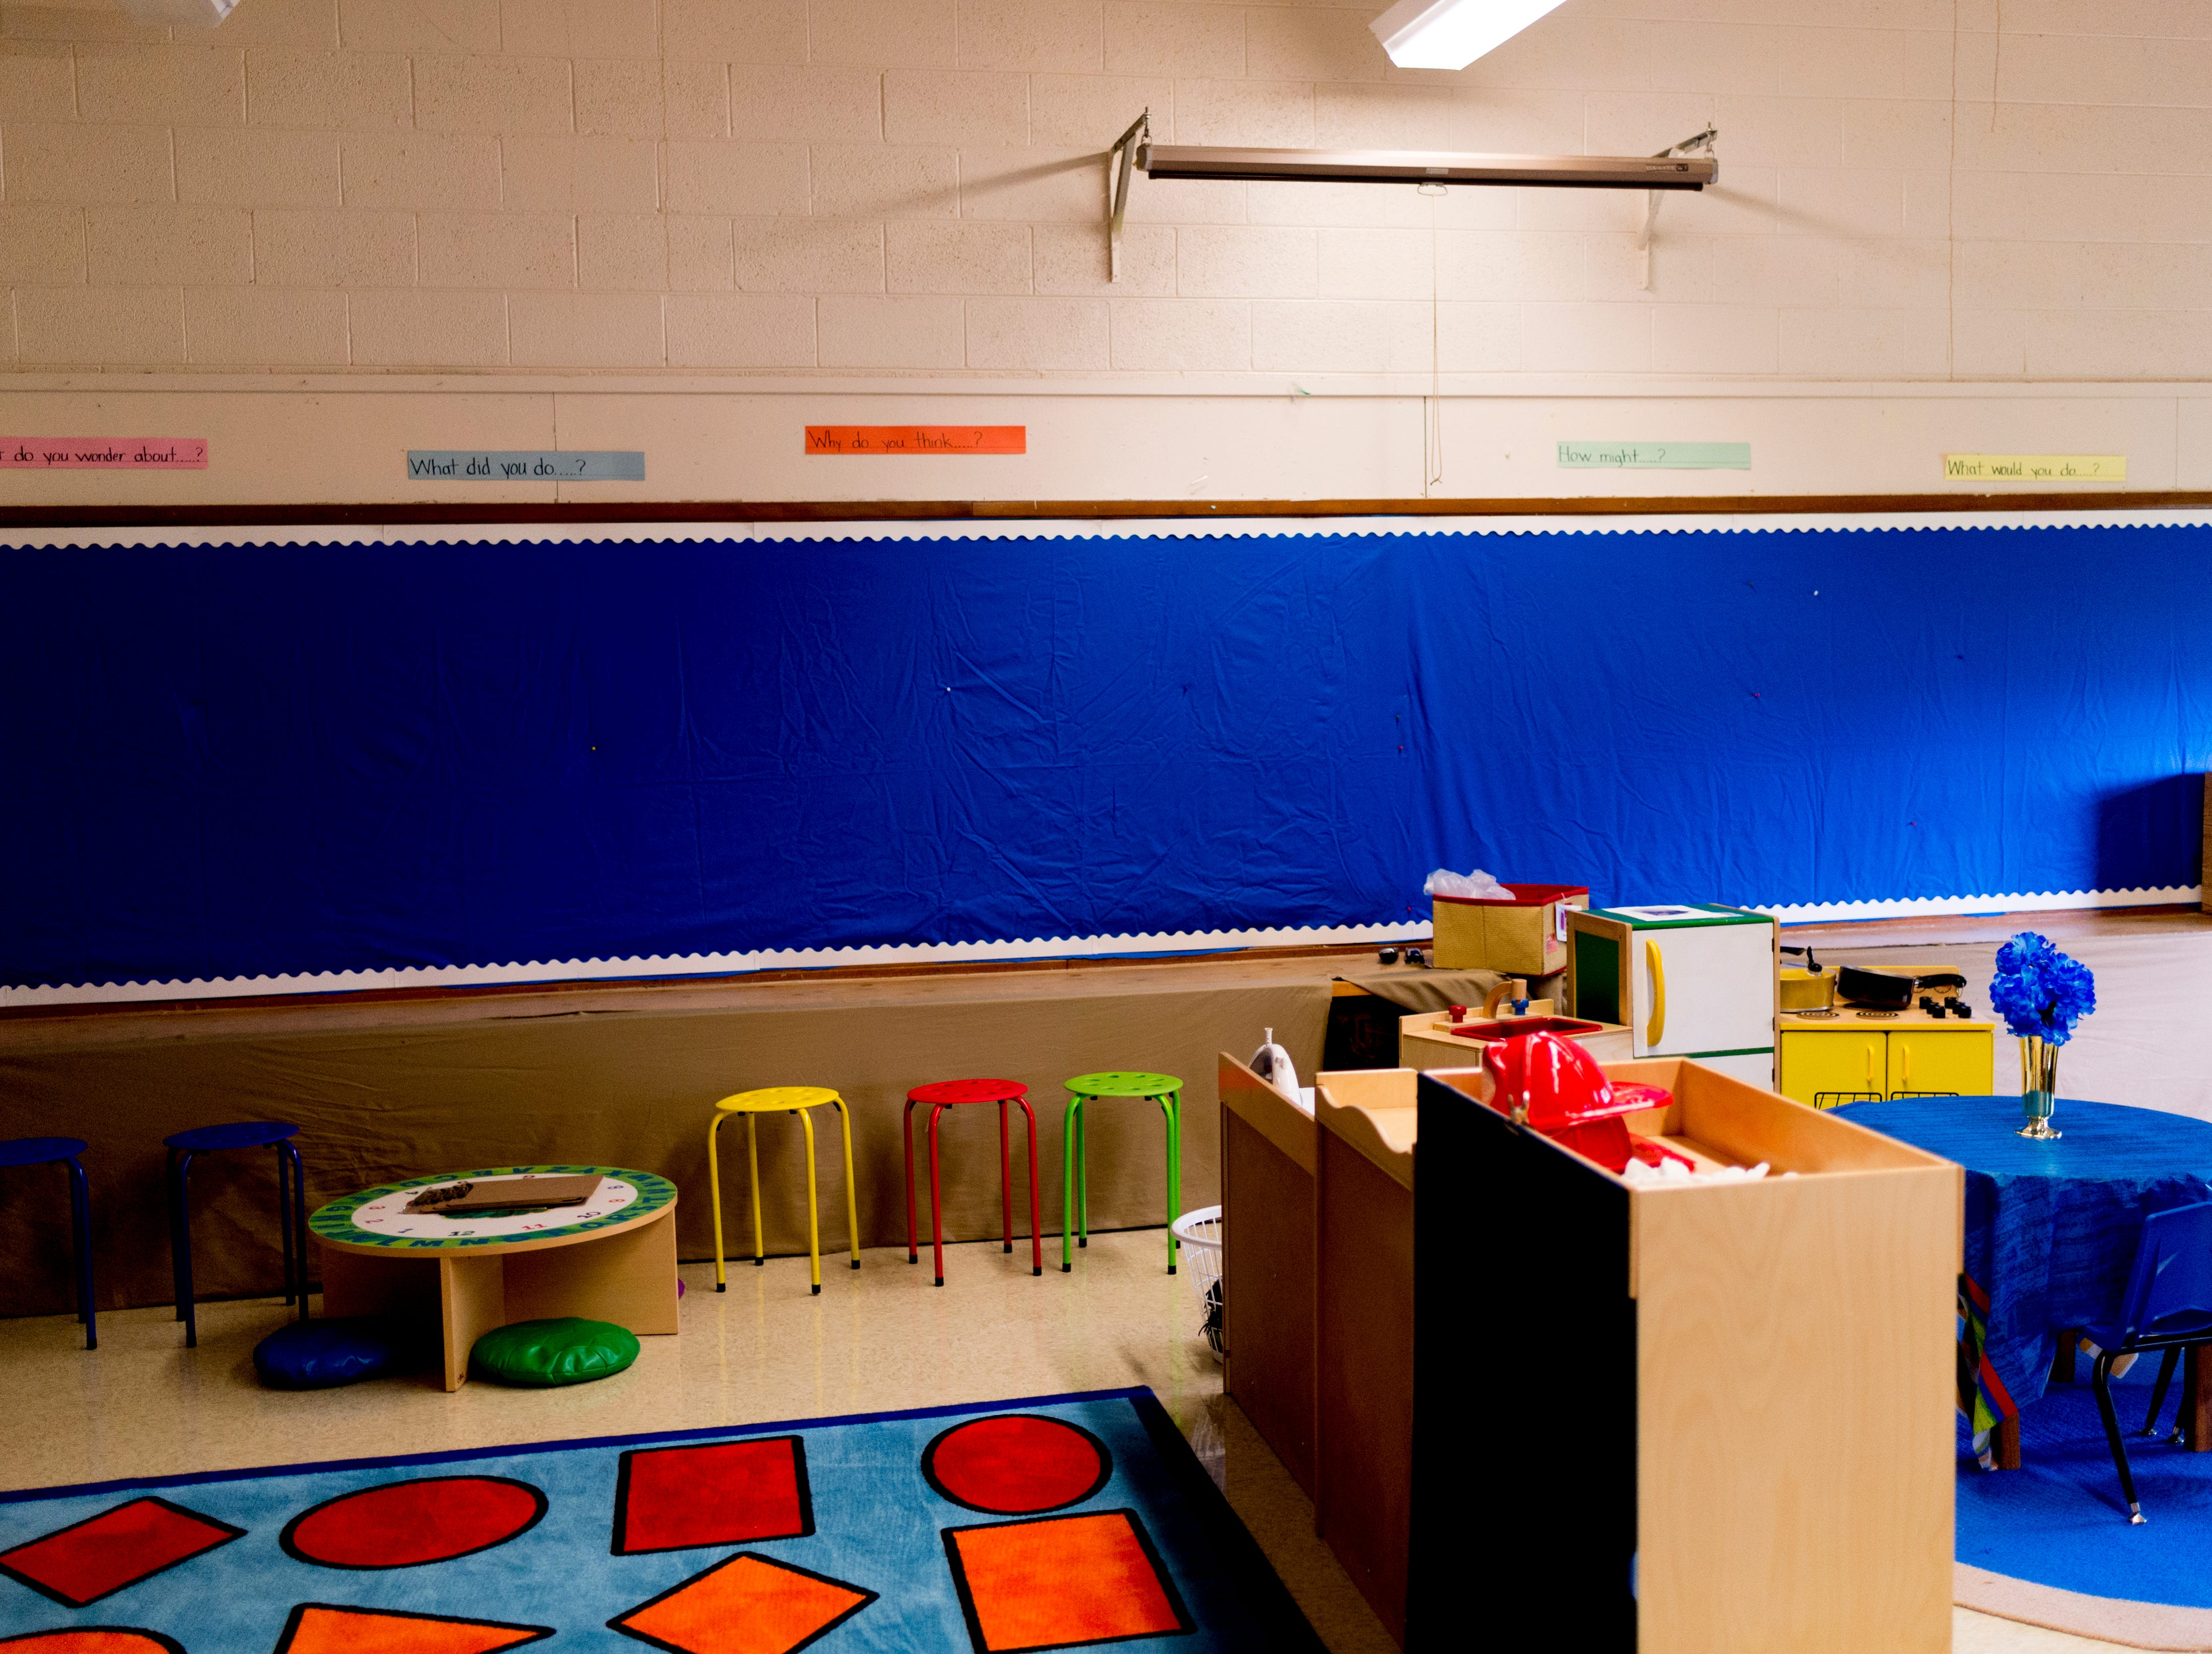 A kindergarten room awaits students at Sam E. Hill Primary School in the Lonsdale community in Knoxville. The school has newly transitioned from a preschool into a primary school.